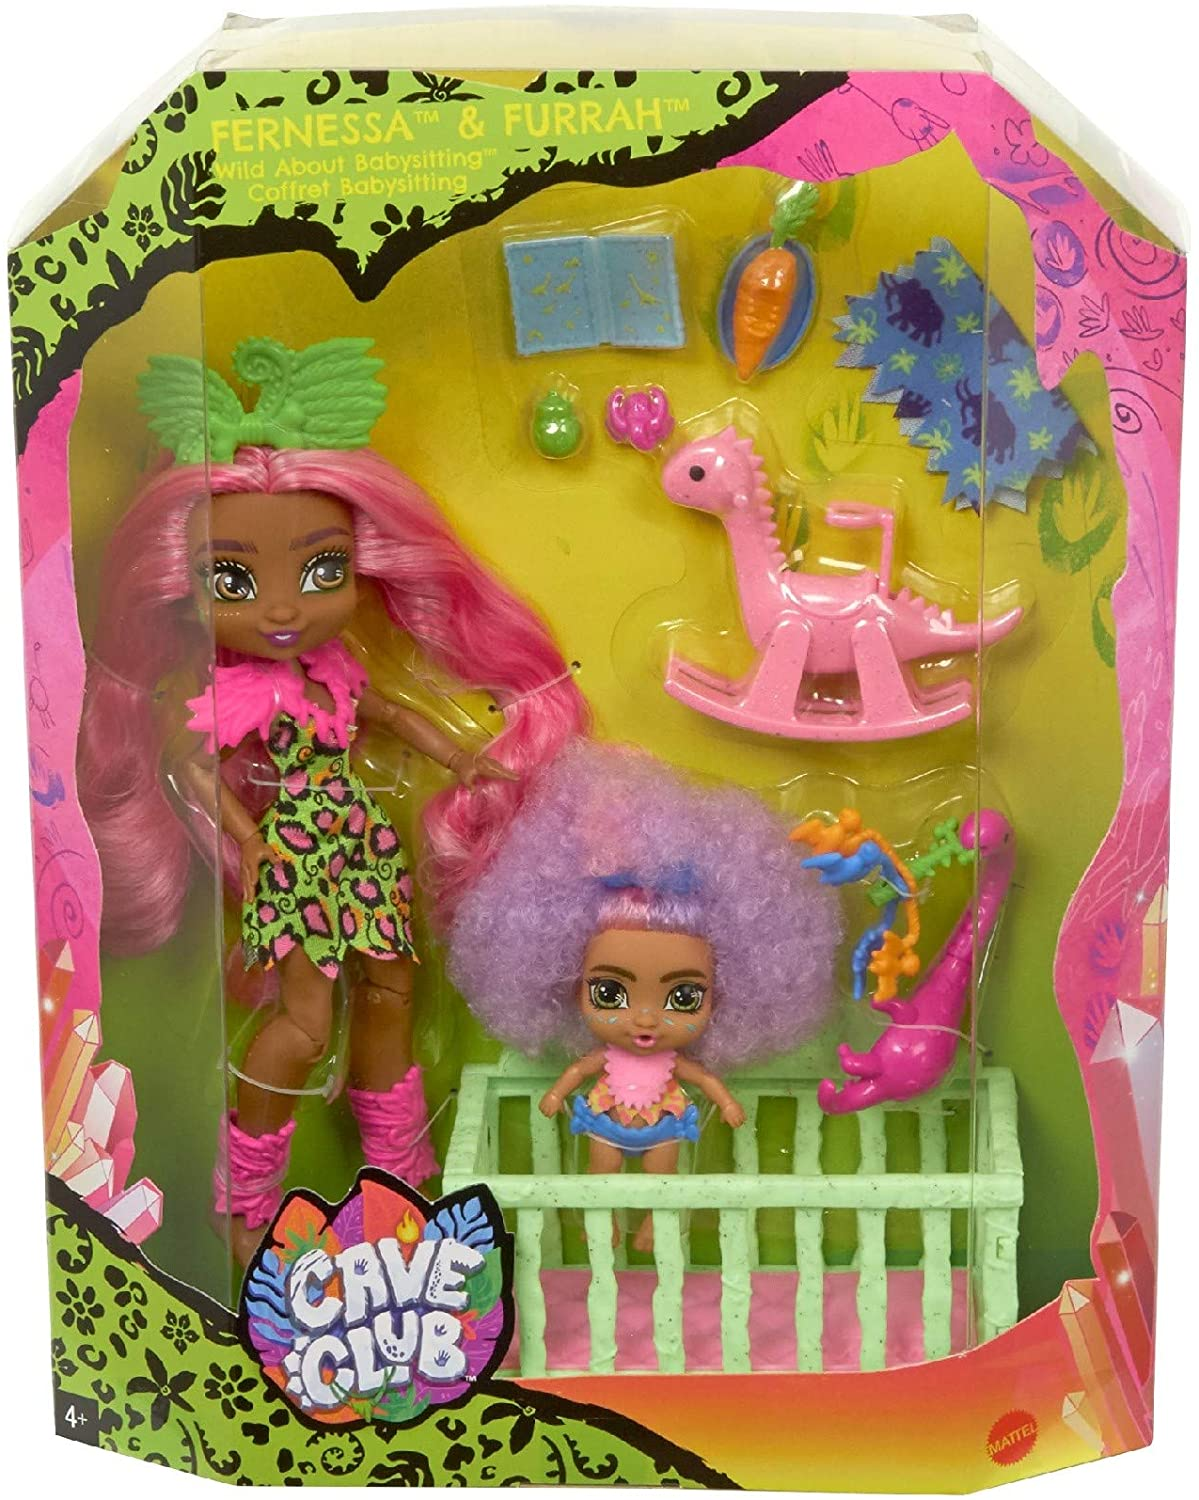 Mattel Cave Club Wild About Babysitting Playset + Fernessa & Furrah Dolls